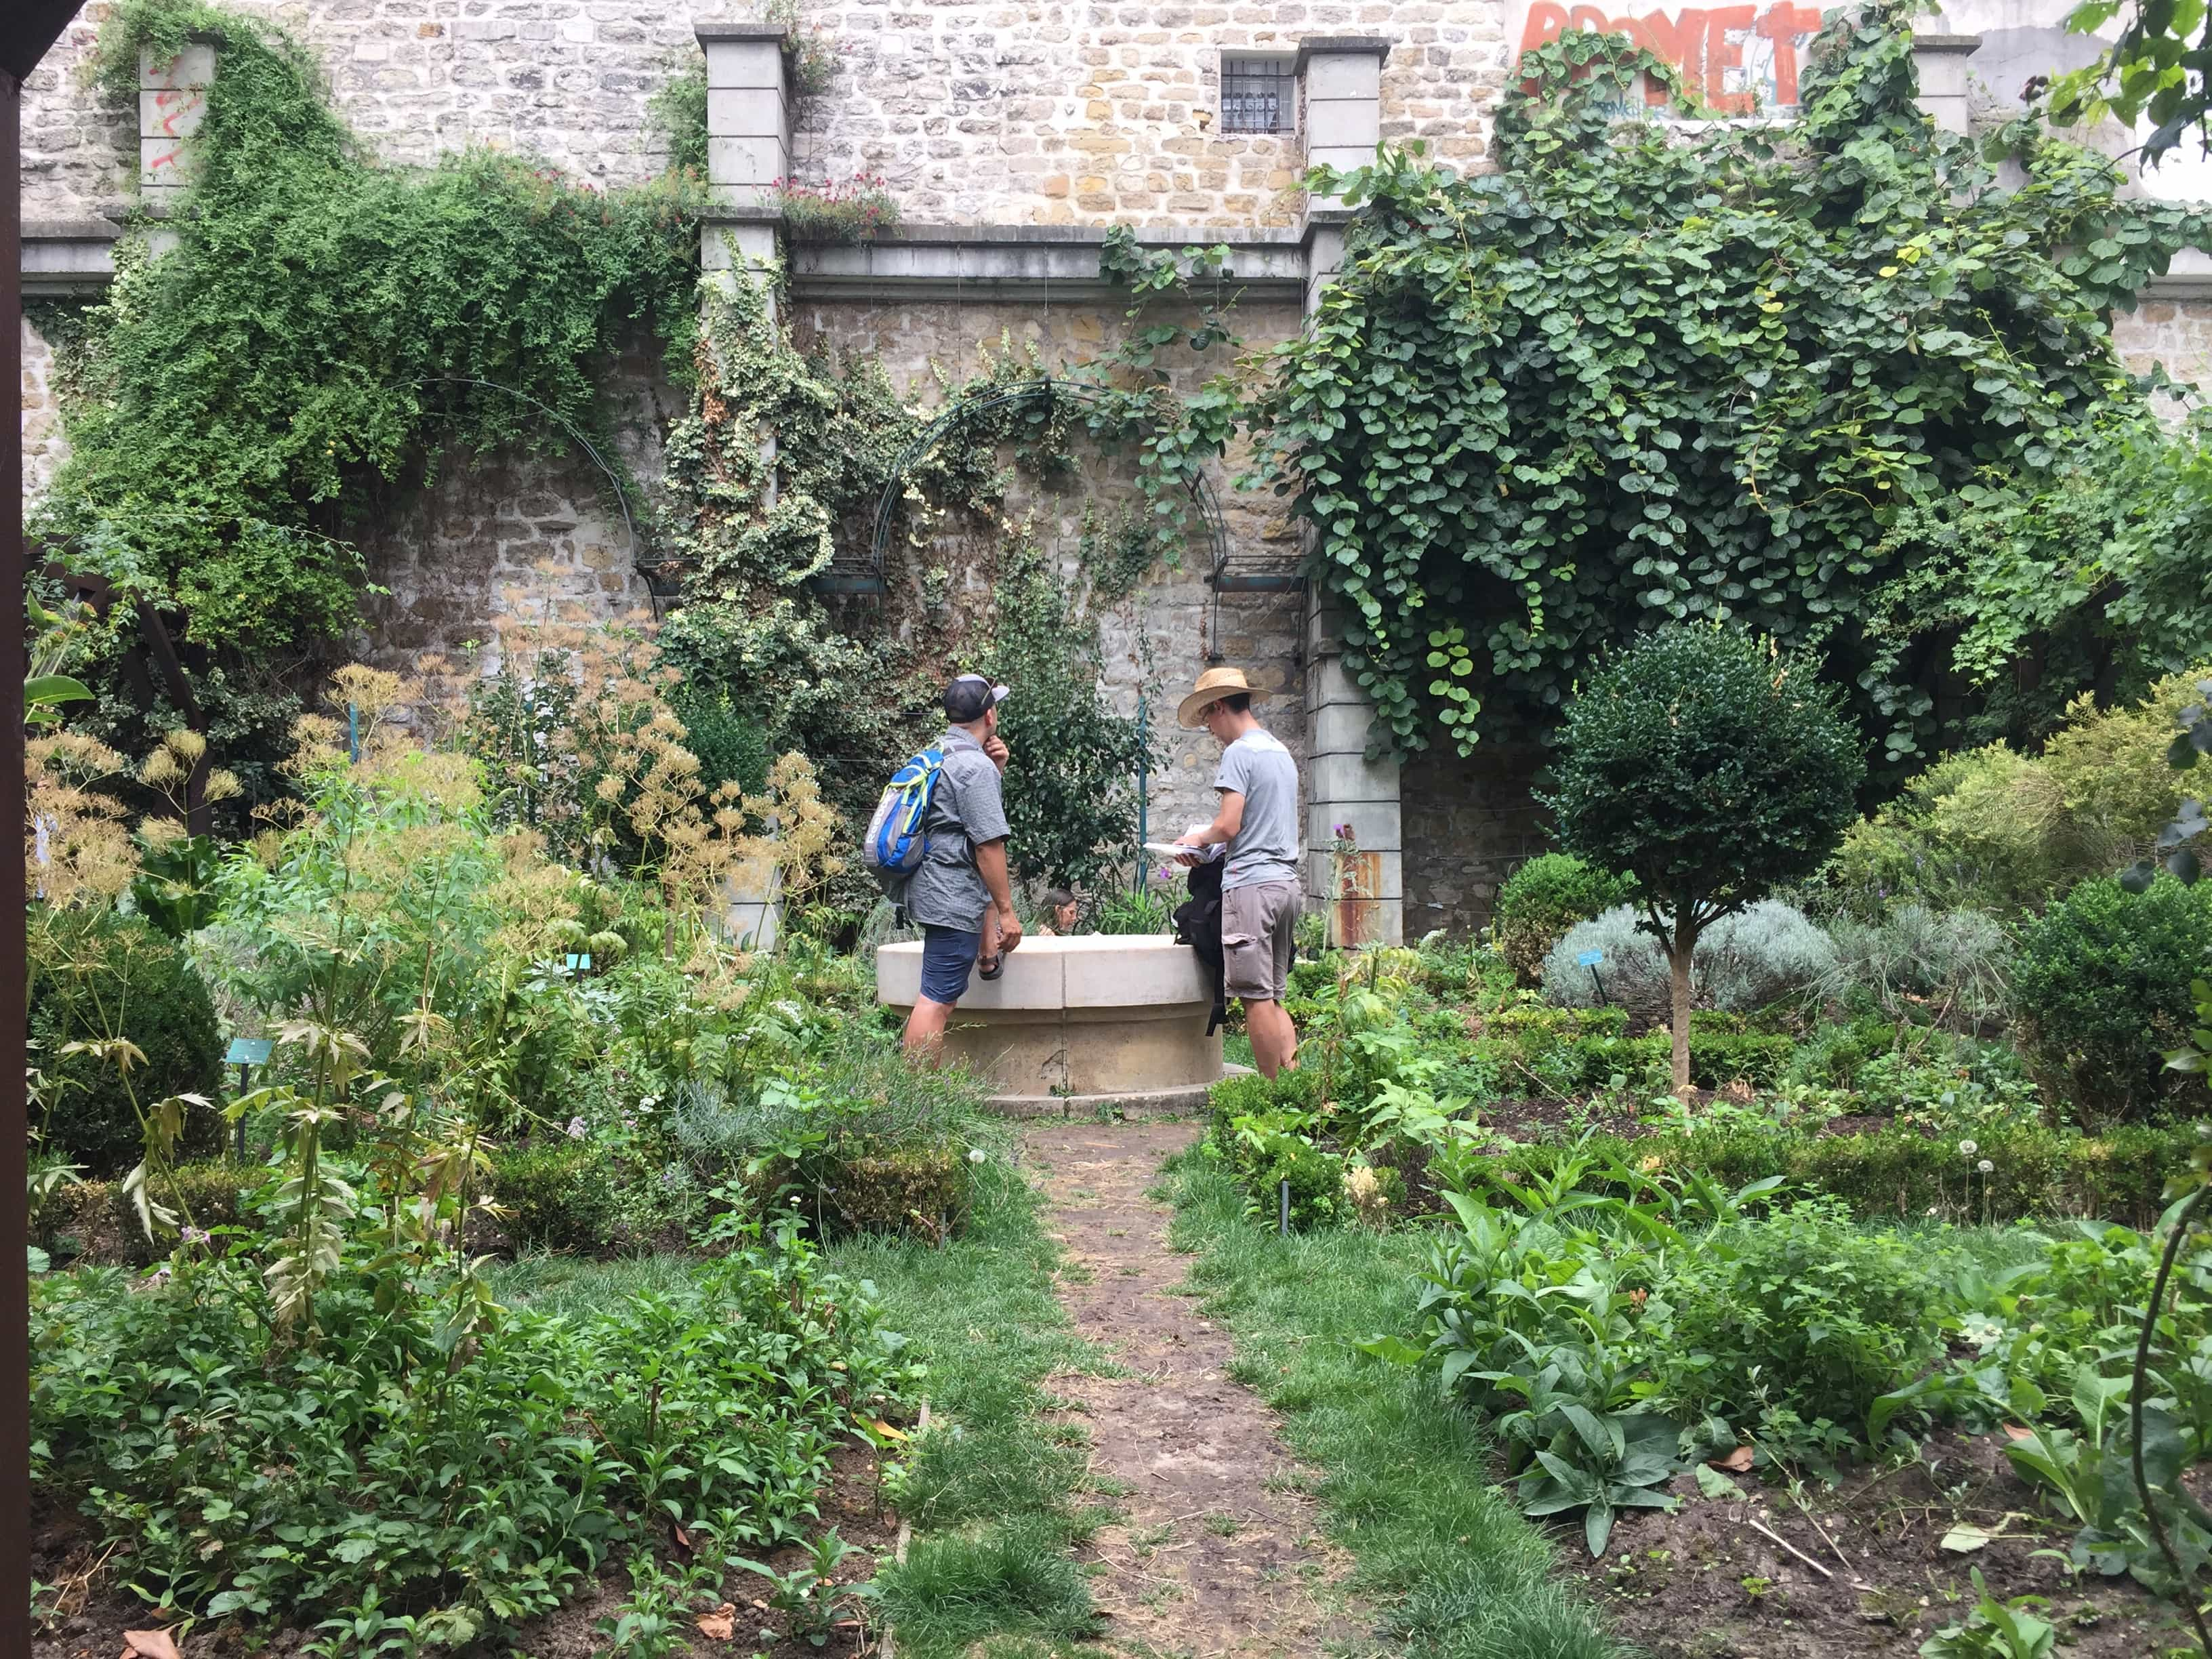 Garden in the middle of no where/Paris